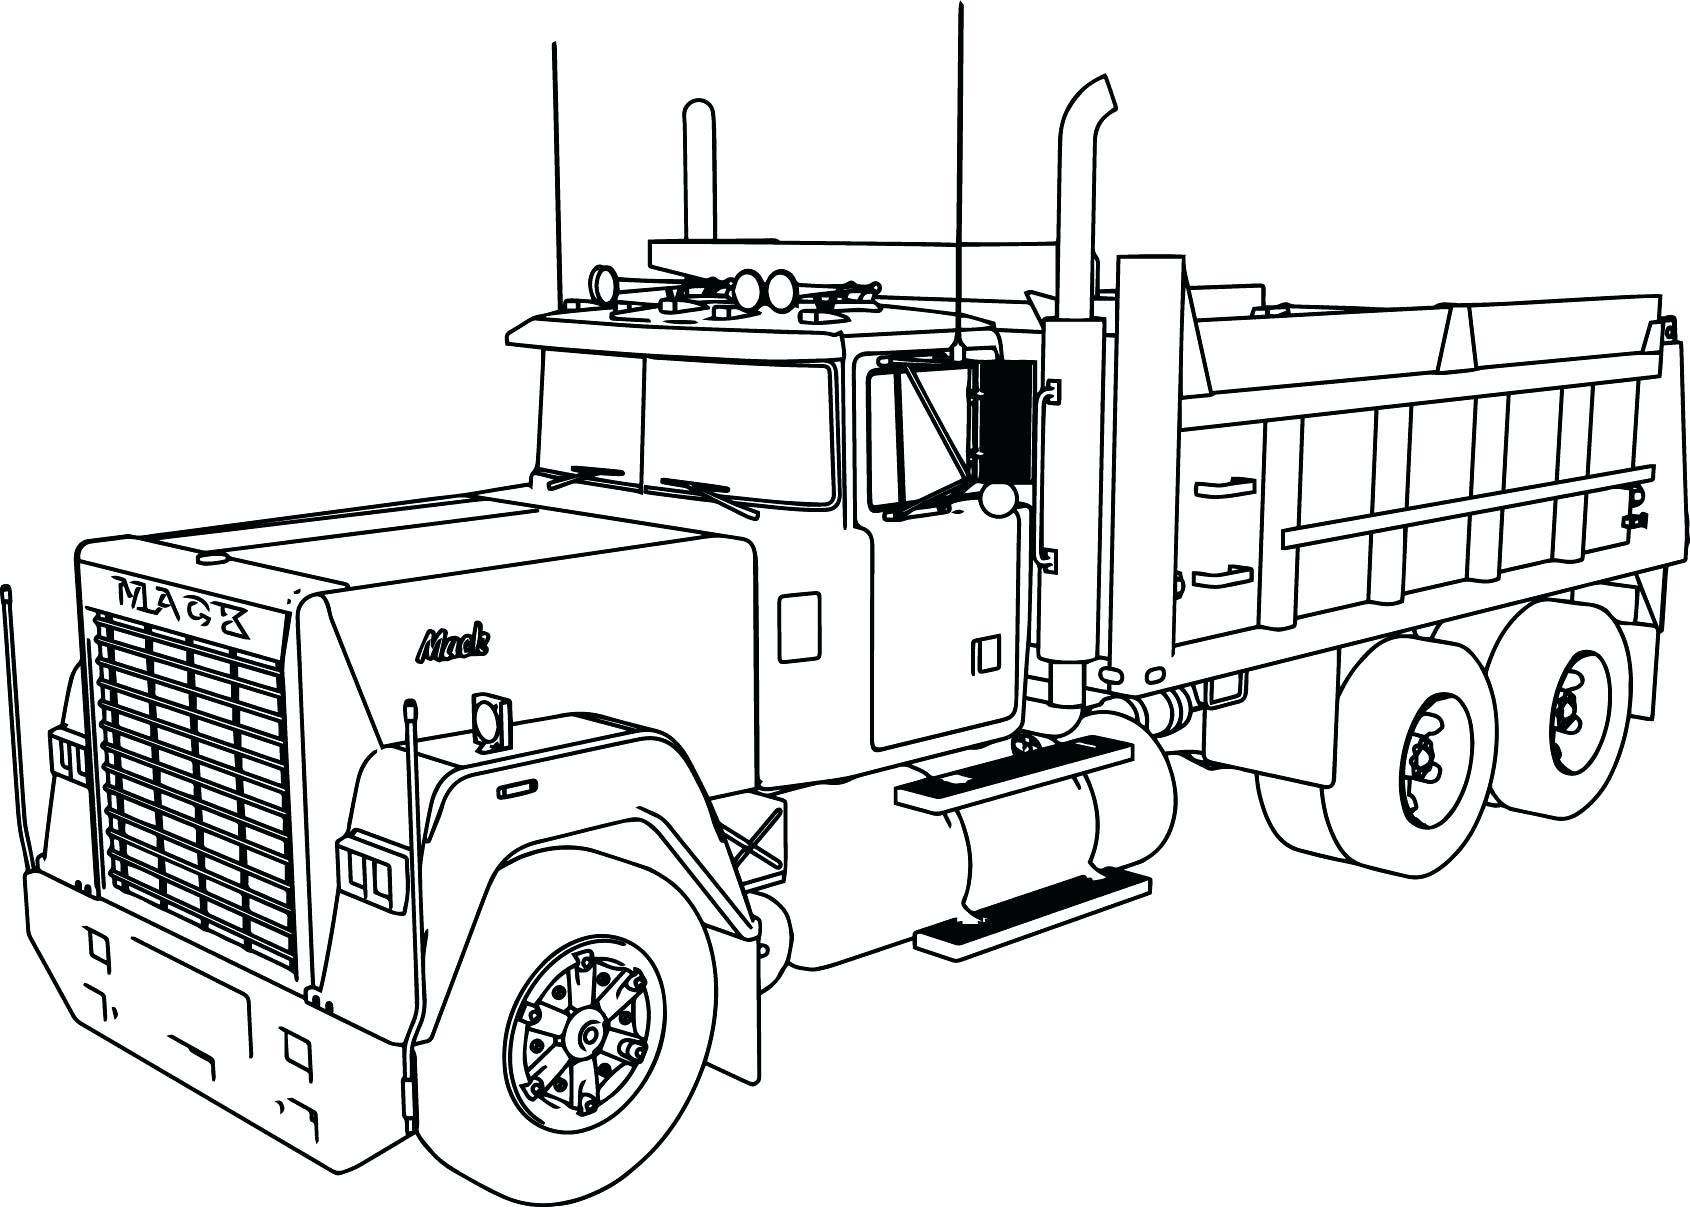 16 Coloring Page Truck Truck Coloring Pages Tractor Coloring Pages Dumper Truck